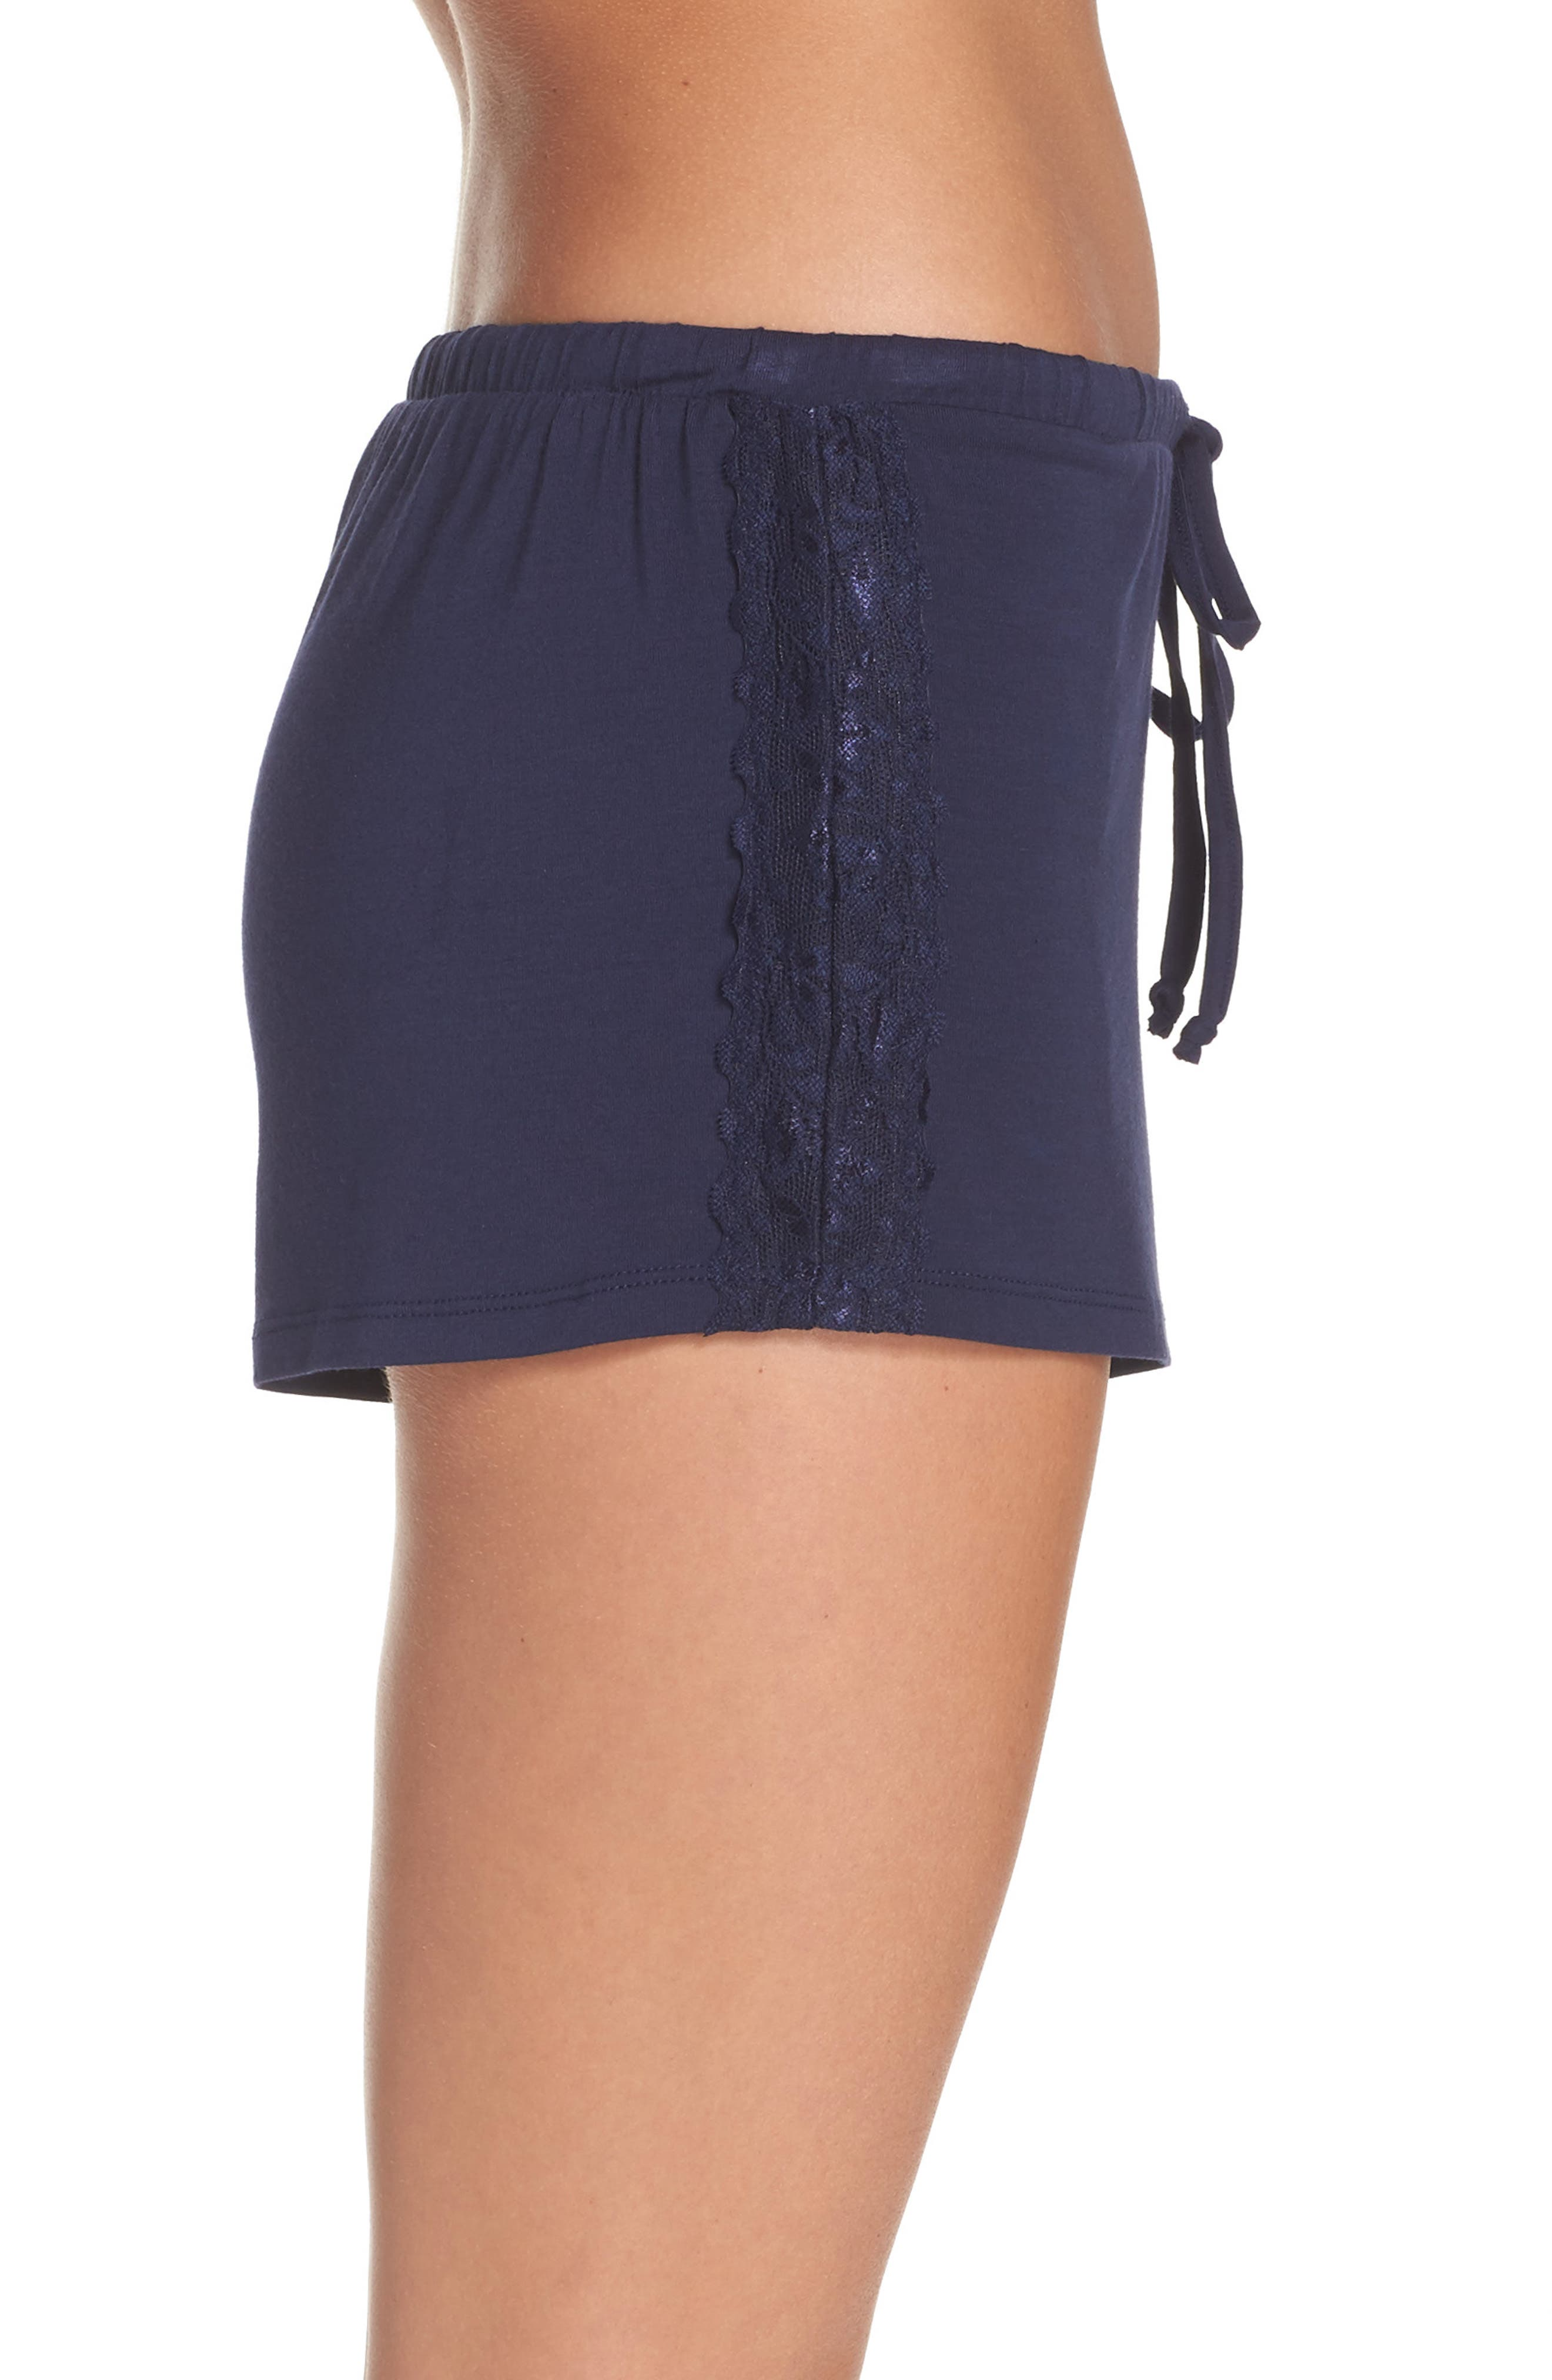 Lounge Shorts,                             Alternate thumbnail 3, color,                             Navy